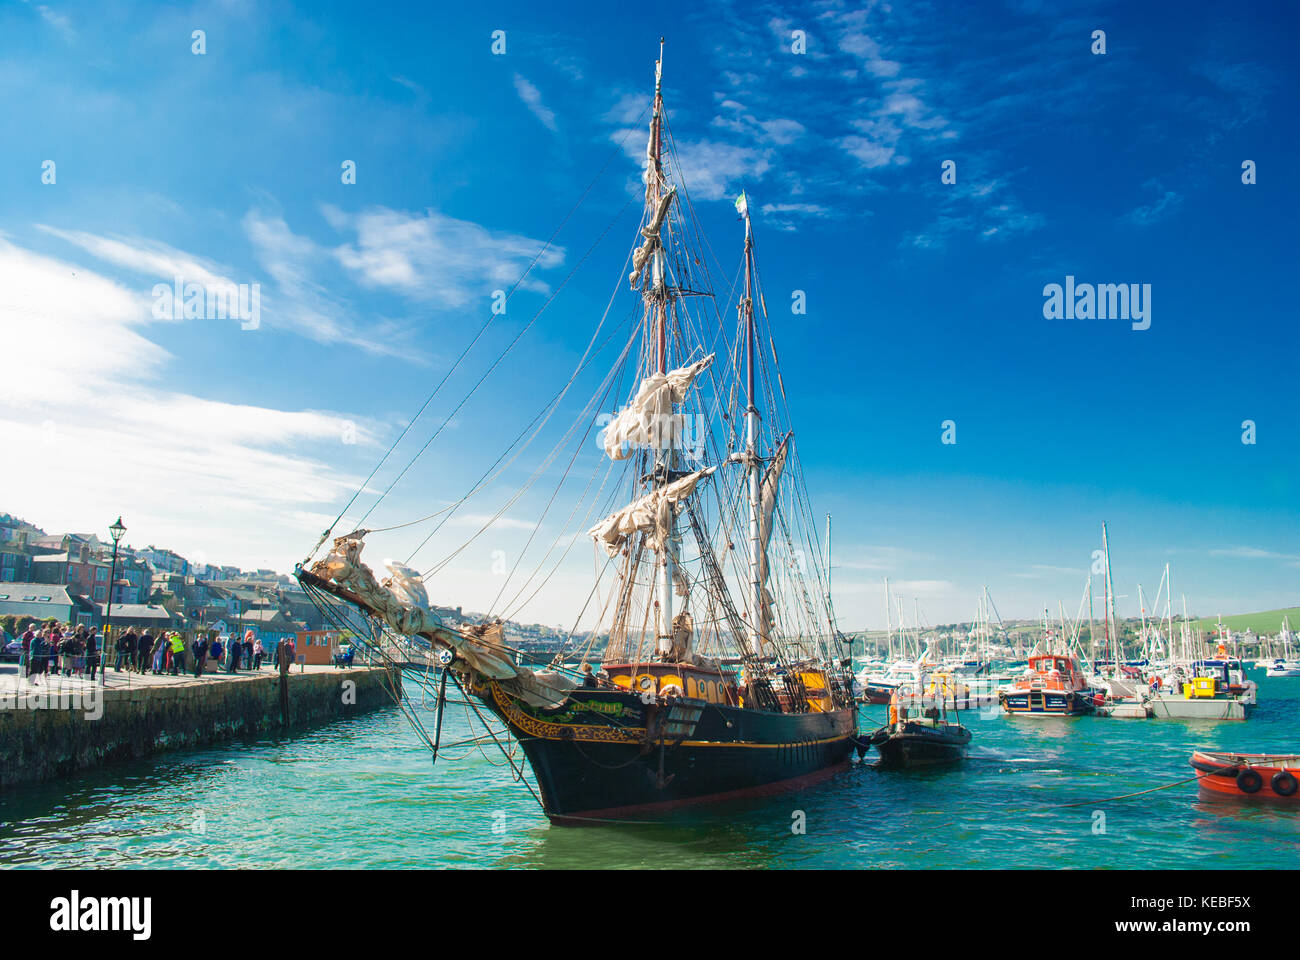 The Tres Hombres is a 32 Meter Schooner which transports fairtrade goods by windpower only. - Stock Image